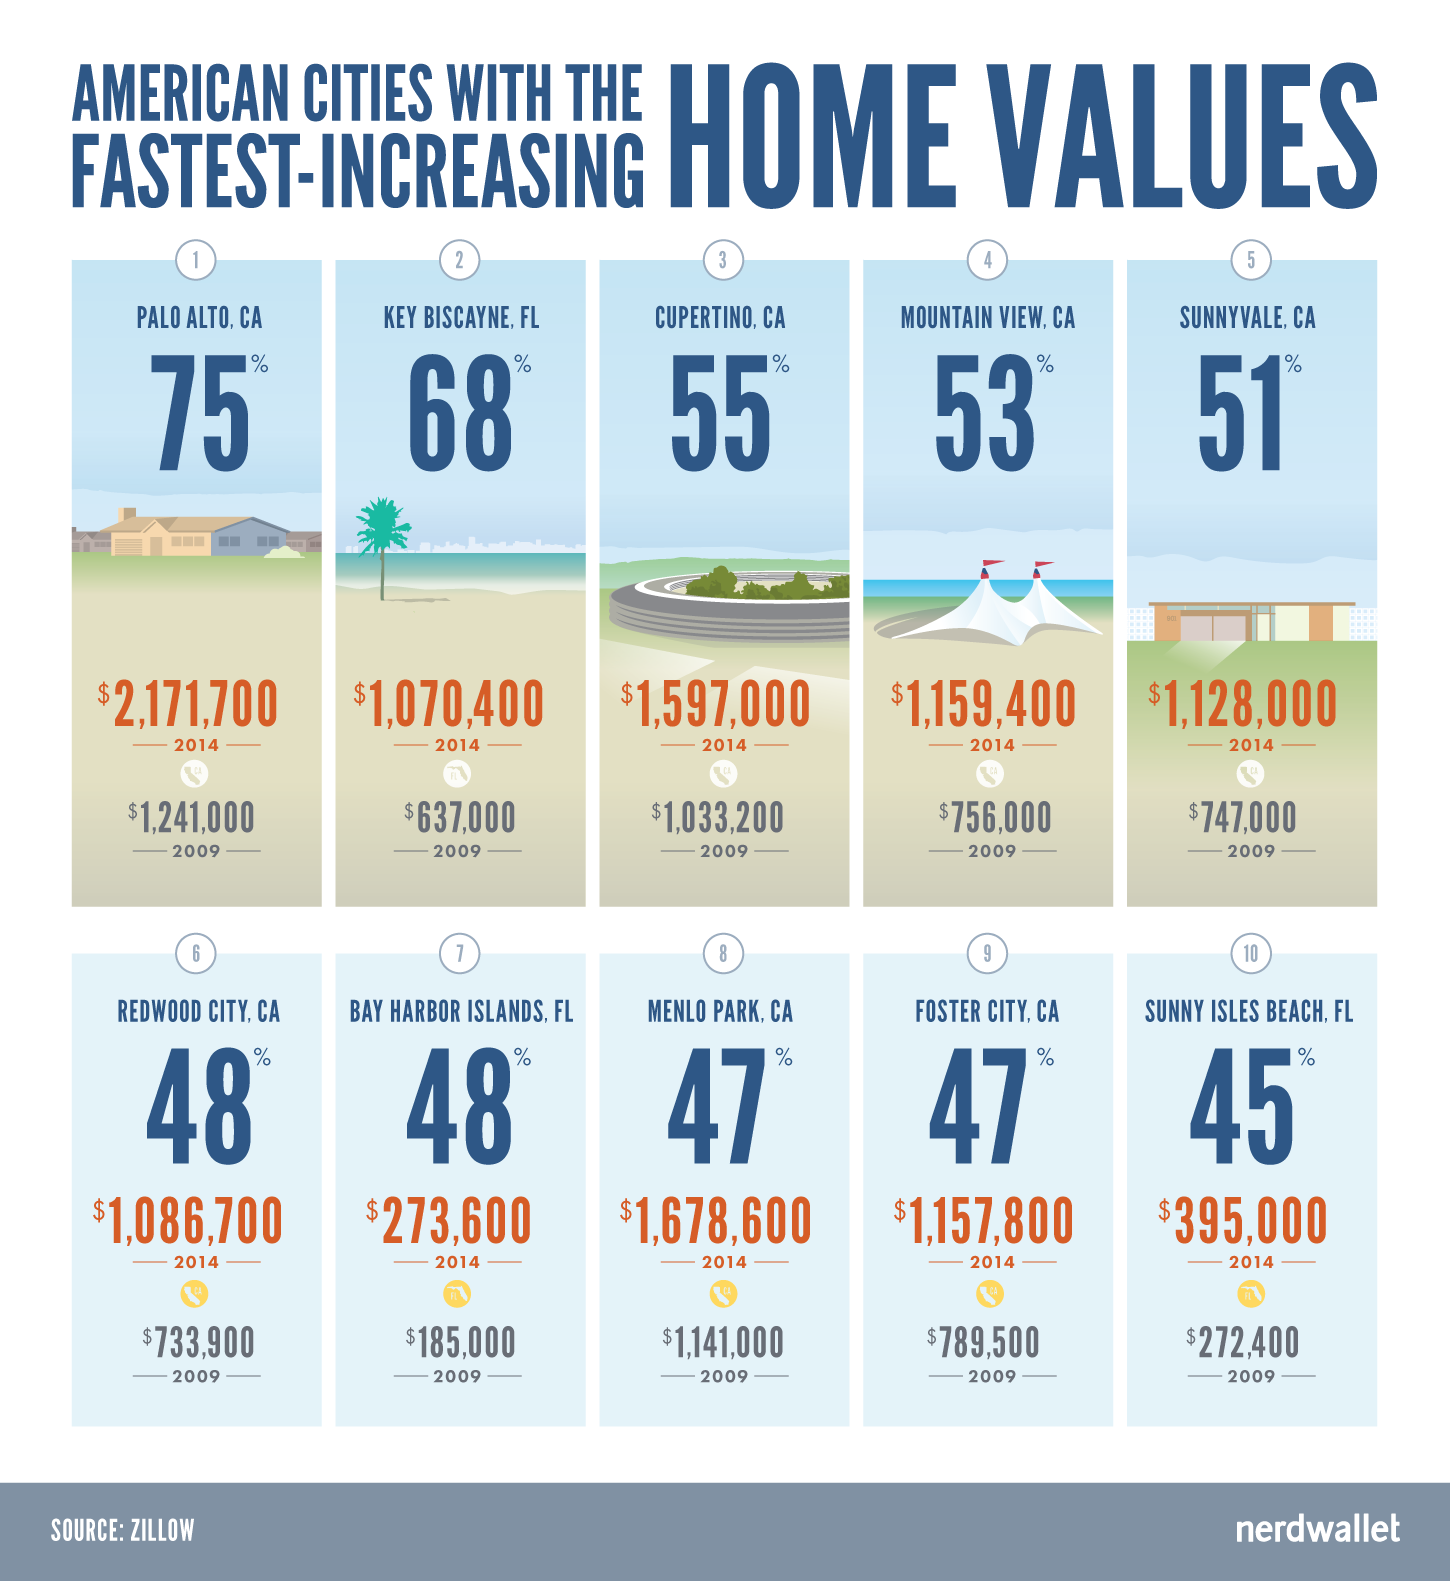 7 Of The 10 American Cities With Fastest Growing Home